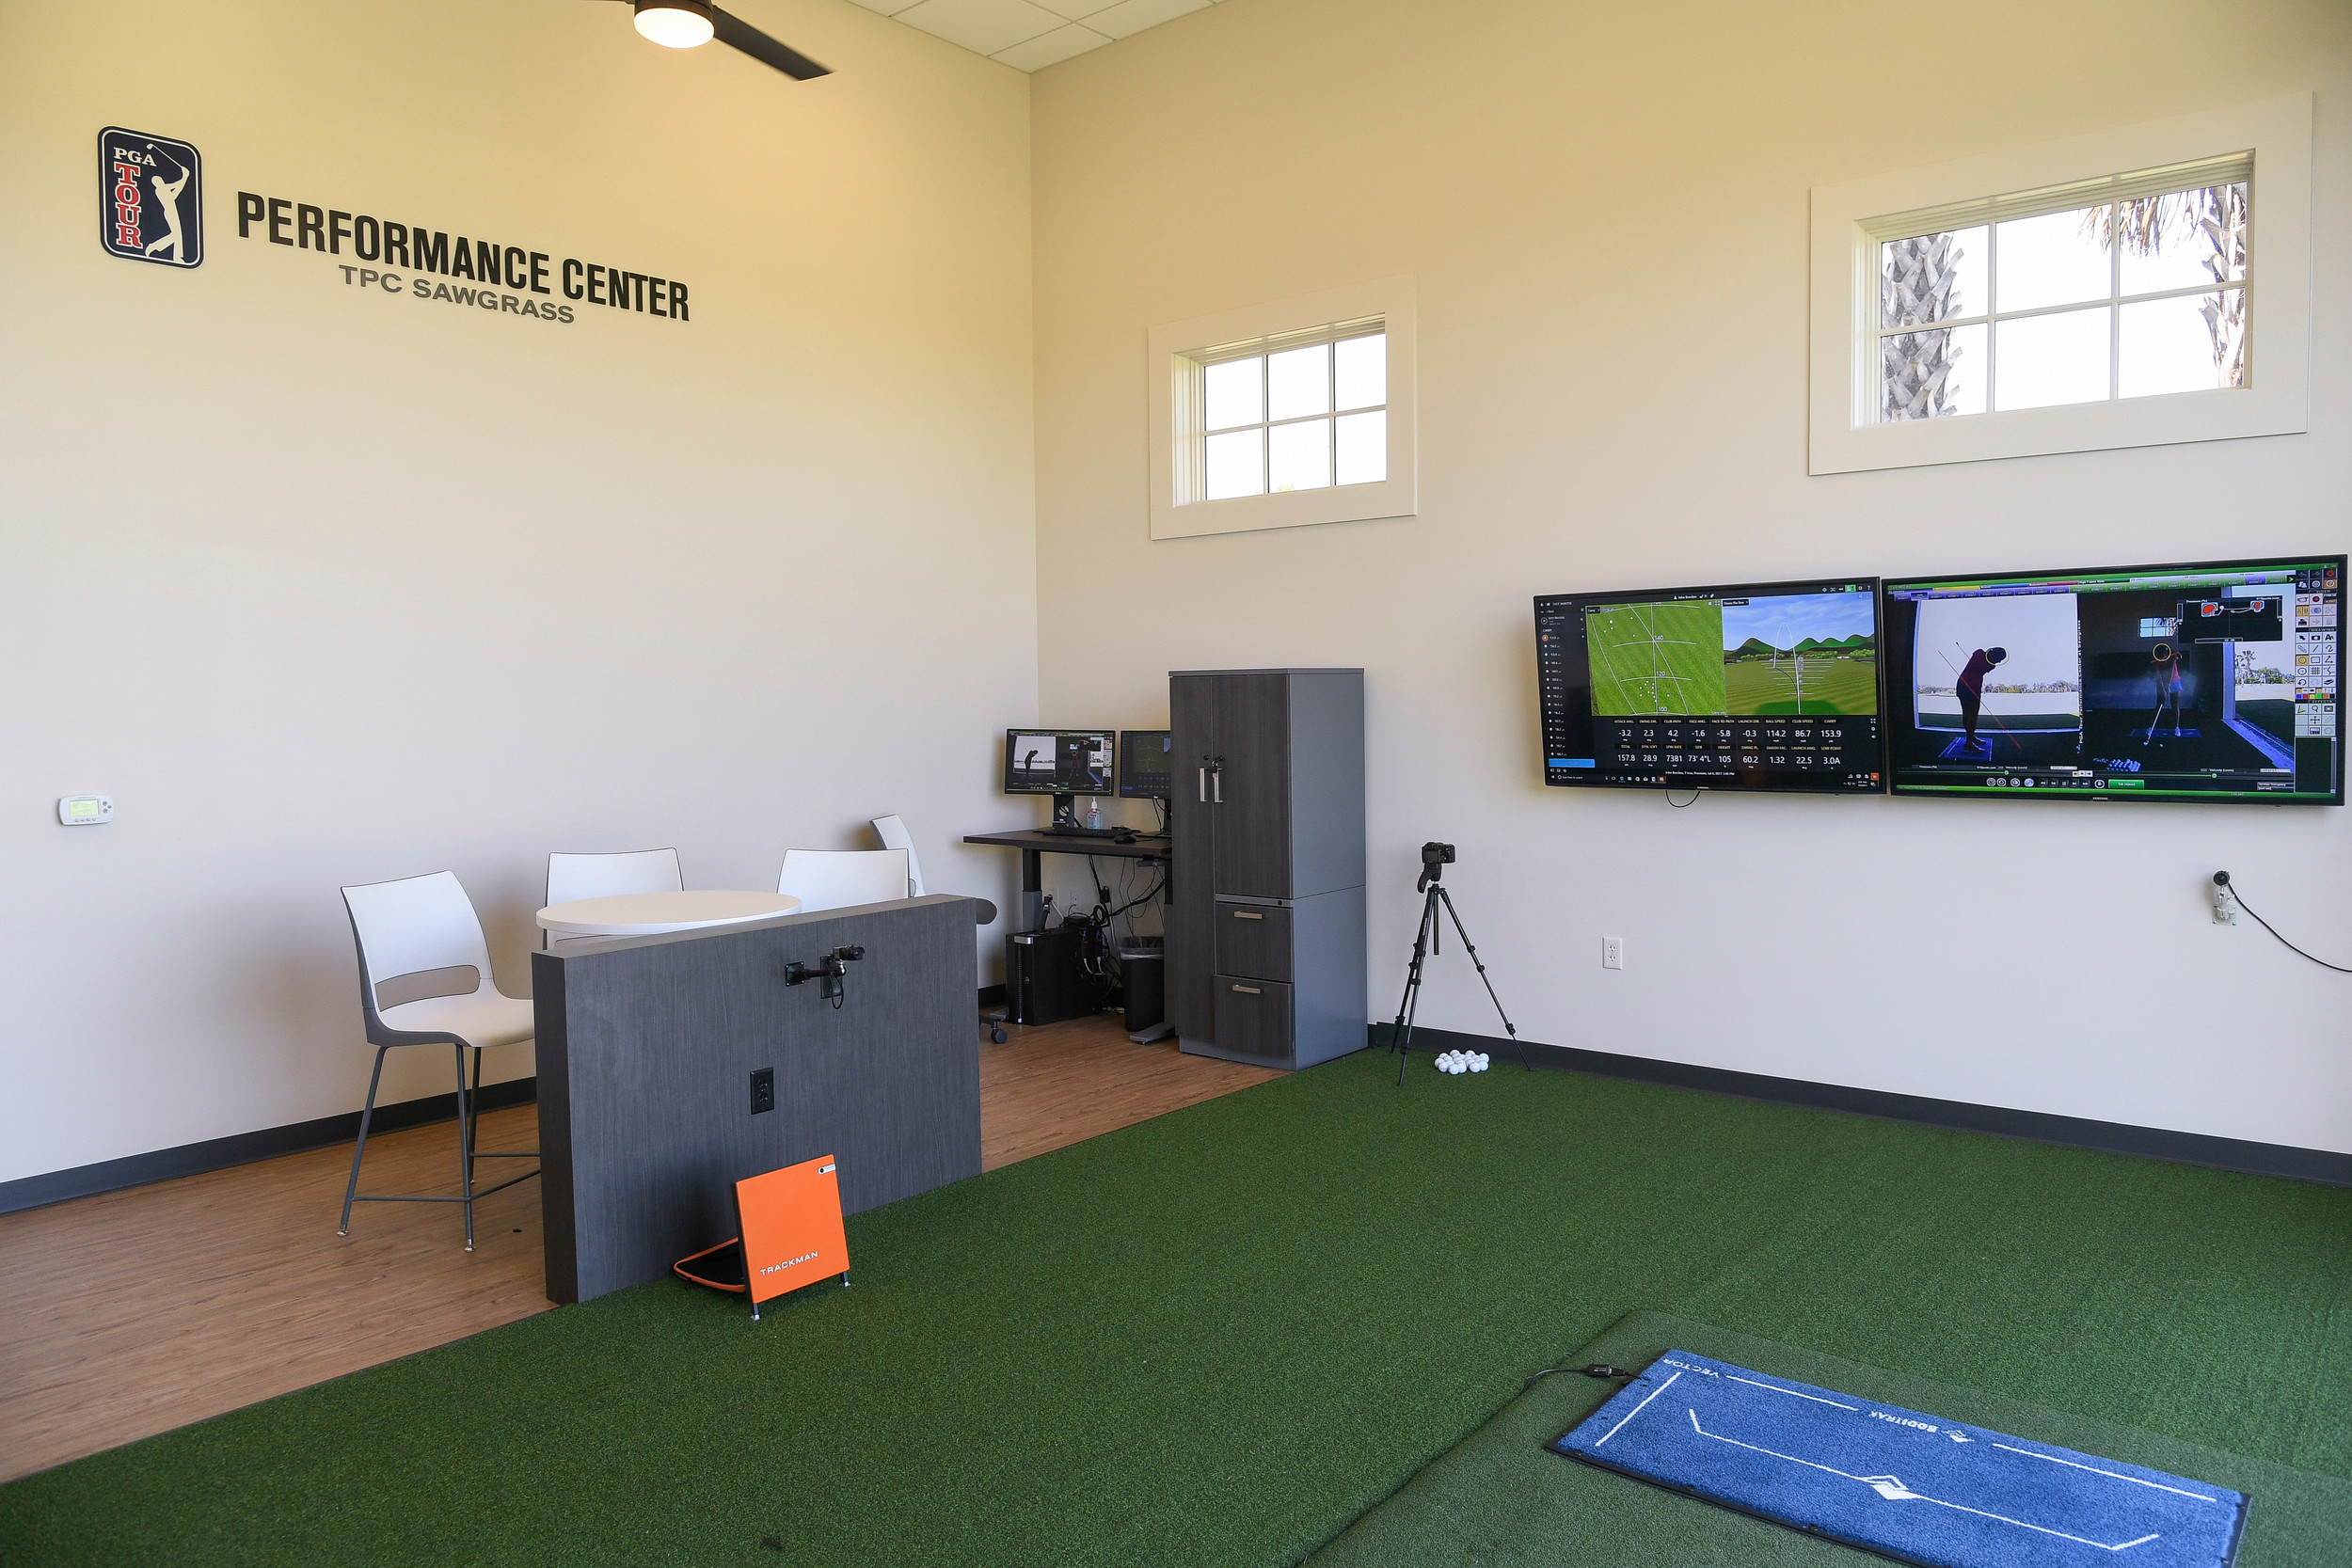 The performance center's hitting bays feature state of the art technology to help students improve their game.